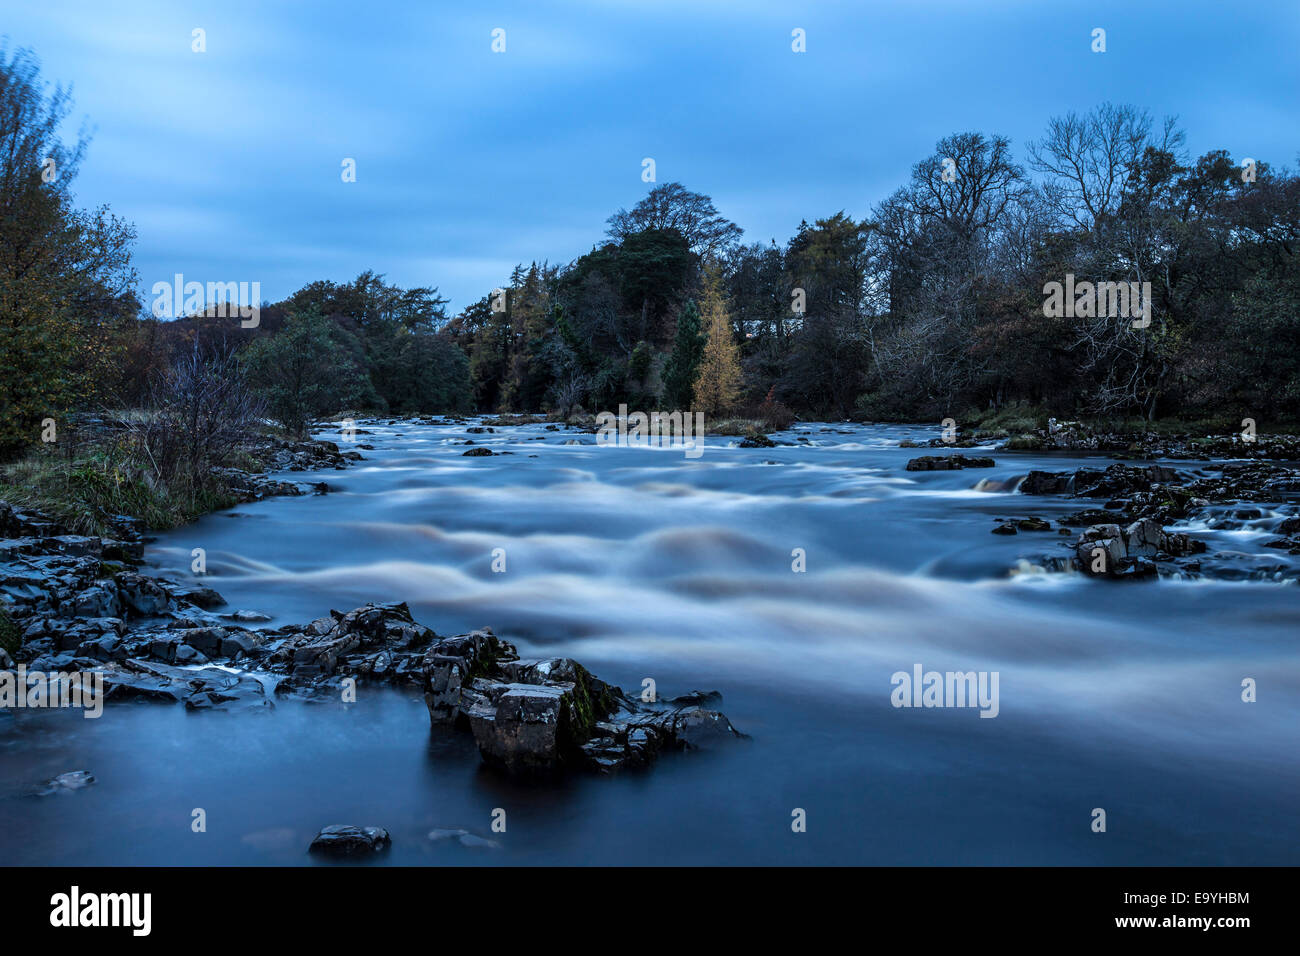 The River Tees at Night, Bowlees, Teesdale County Durham UK - Stock Image